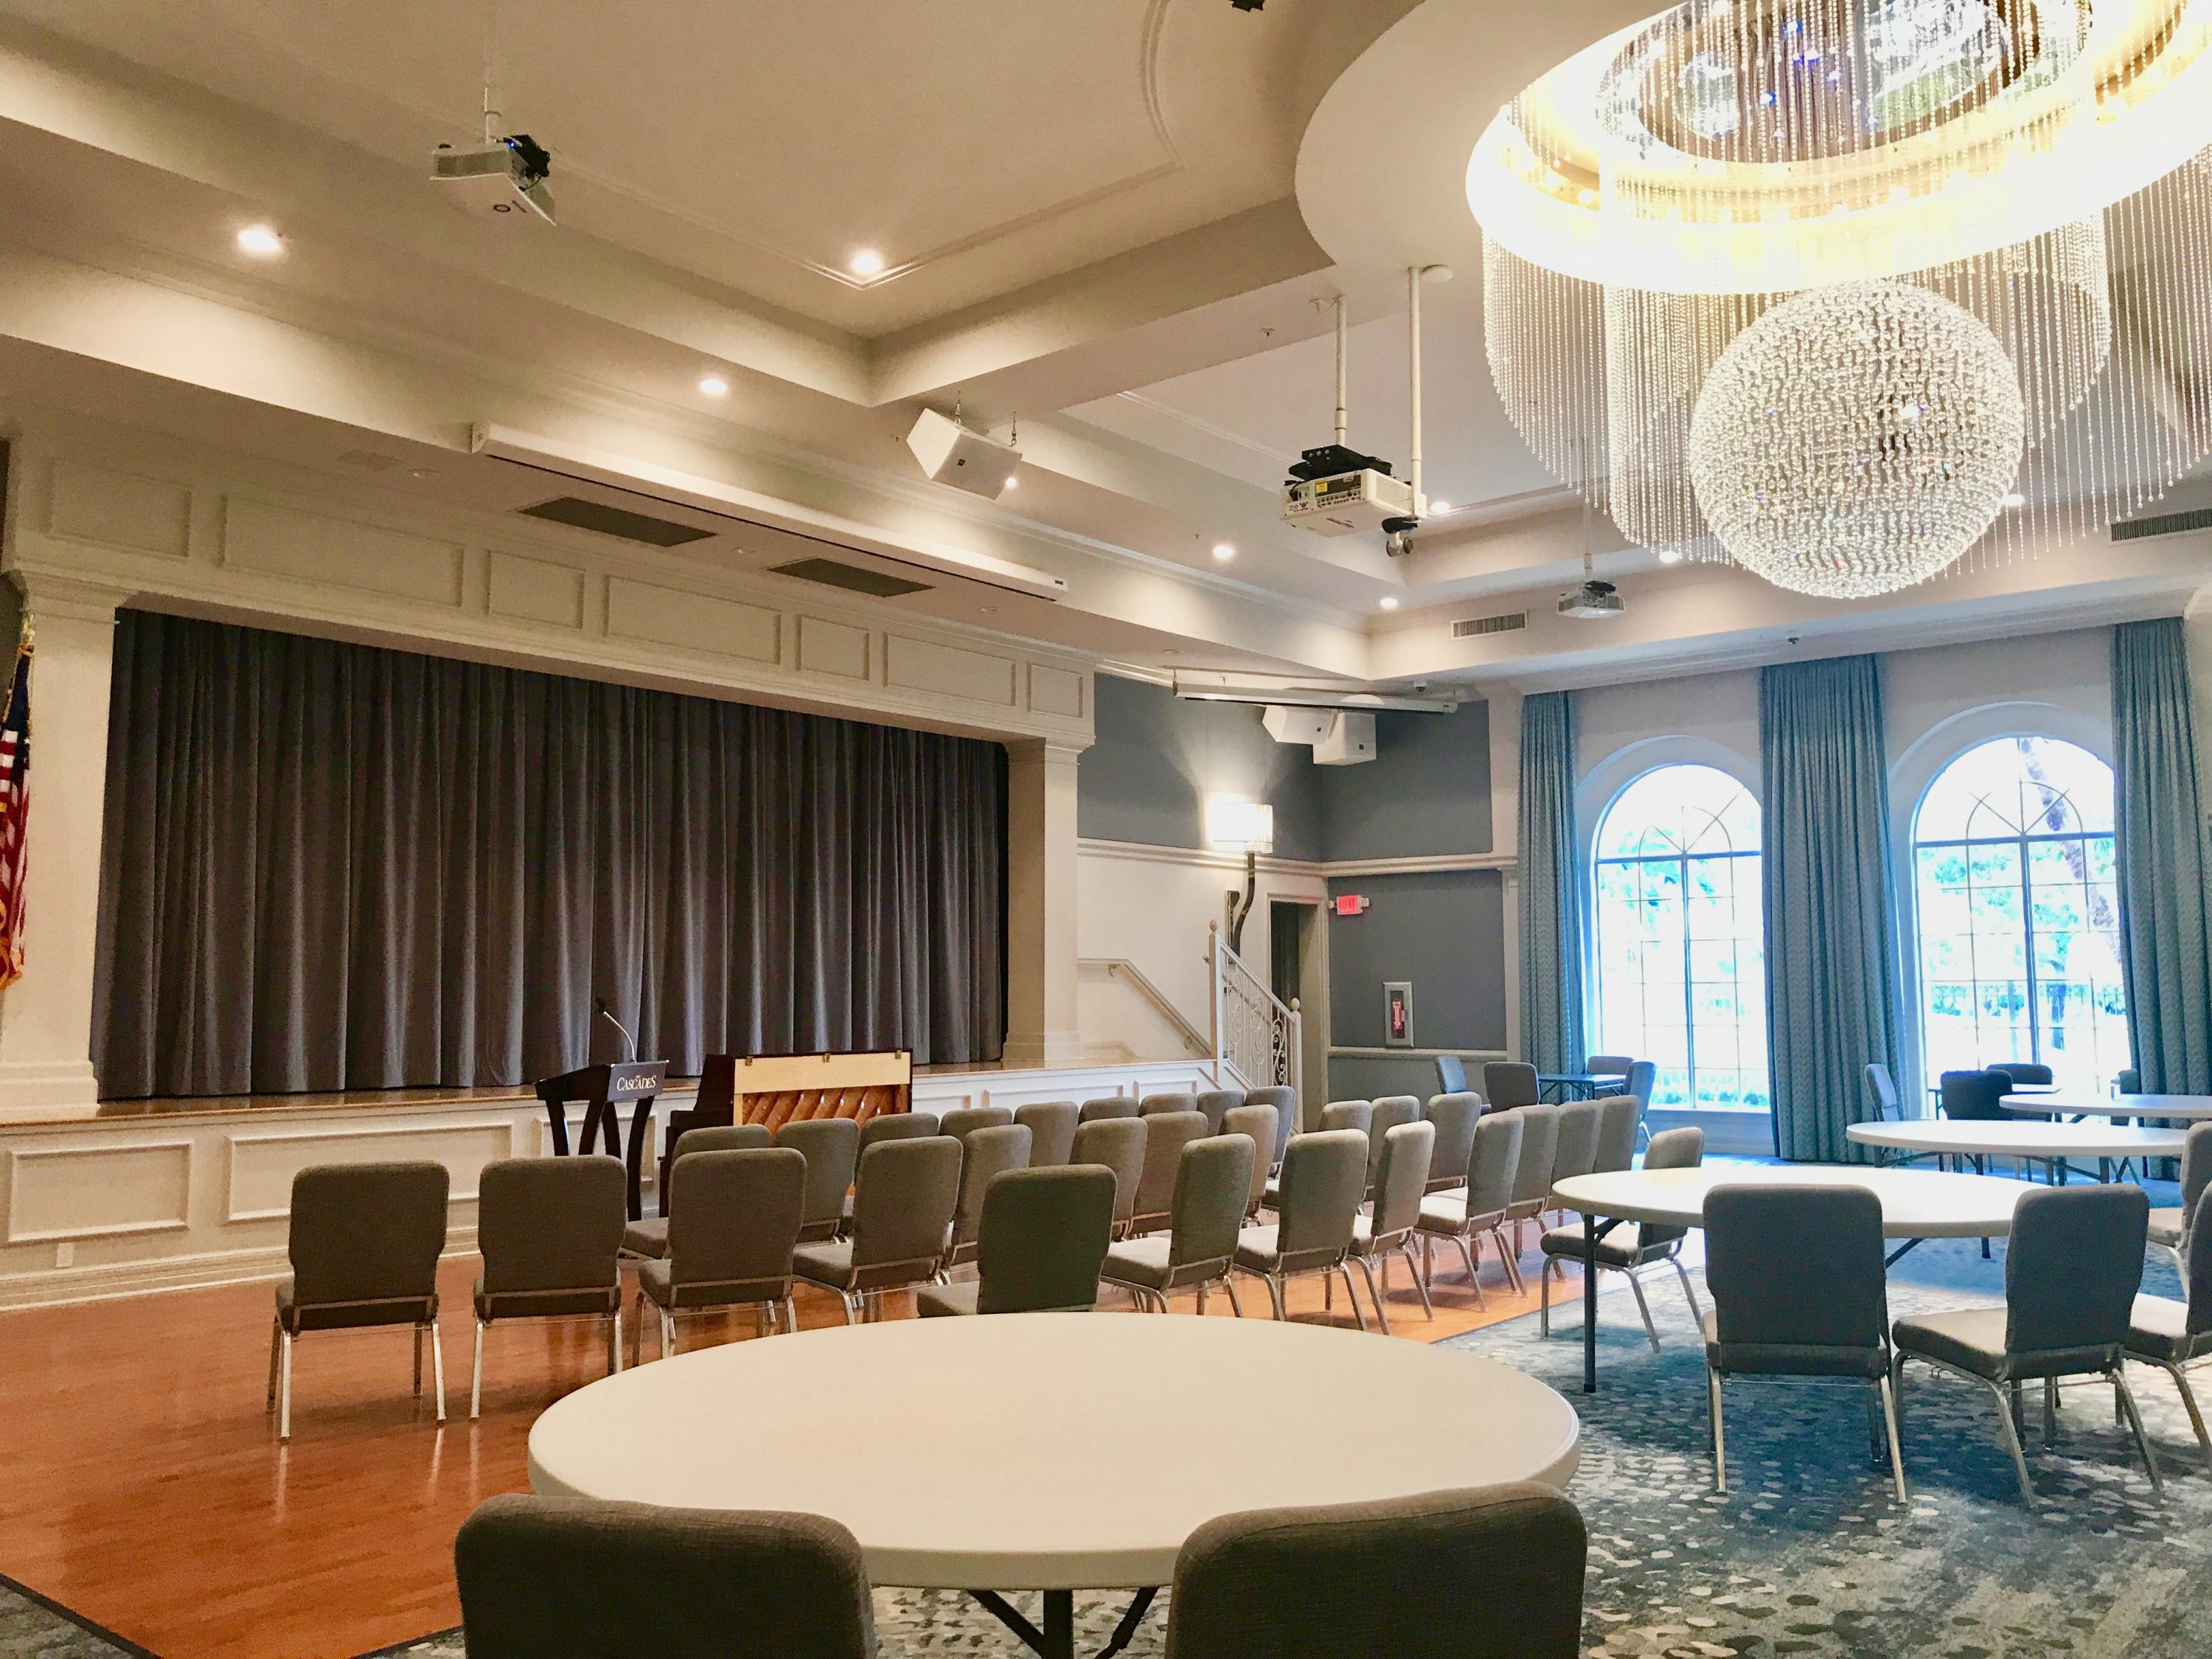 Stage and multipurpose room